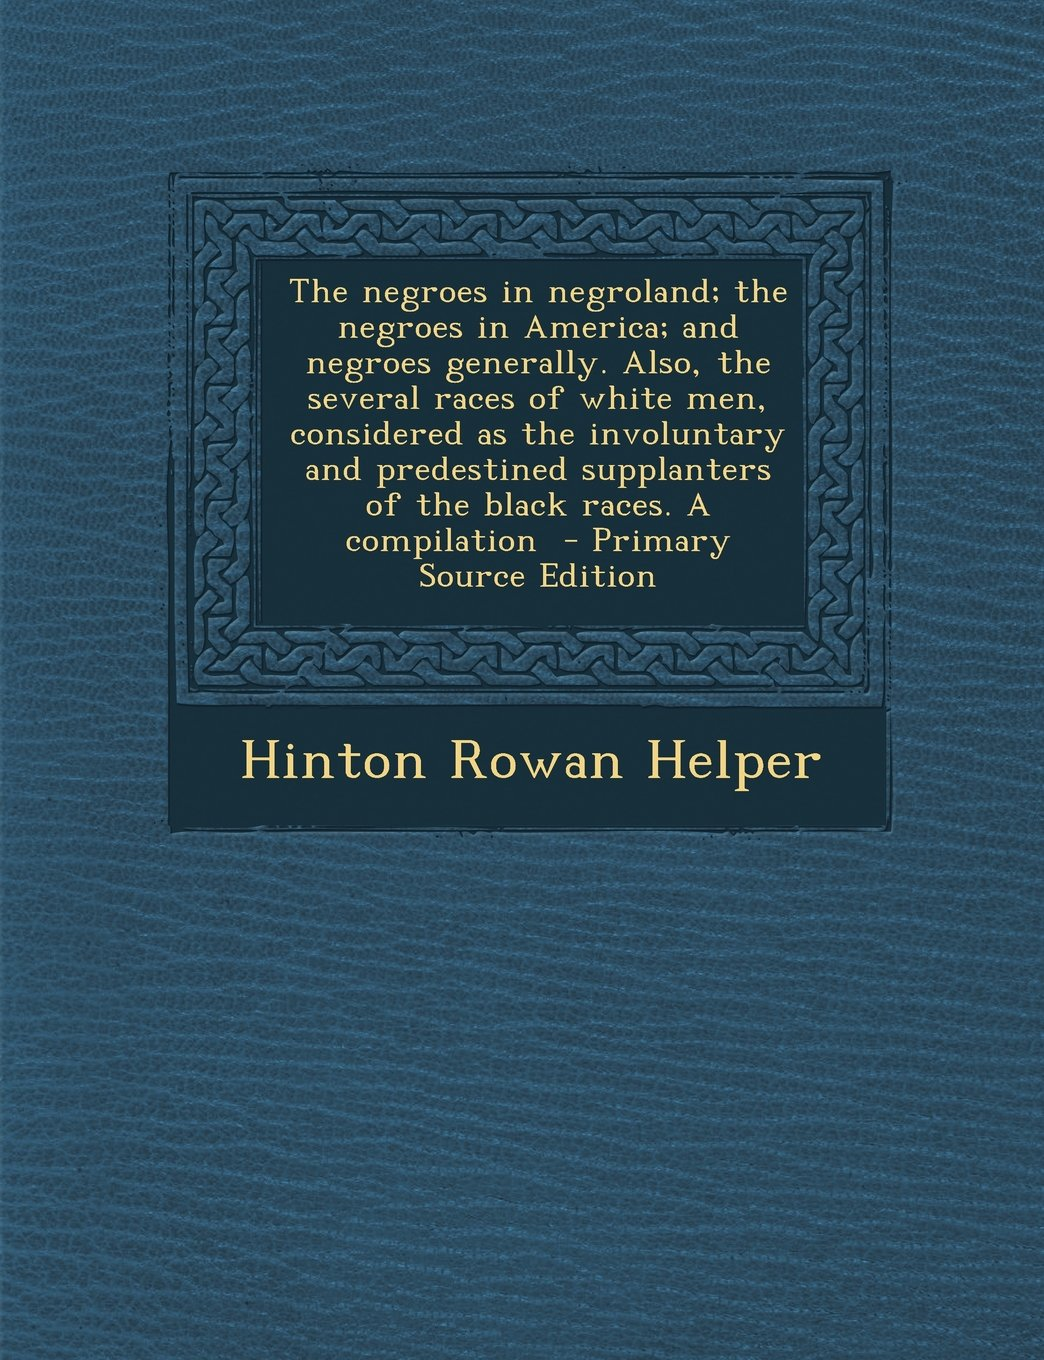 Download The Negroes in Negroland; The Negroes in America; And Negroes Generally. Also, the Several Races of White Men, Considered as the Involuntary and Prede pdf epub